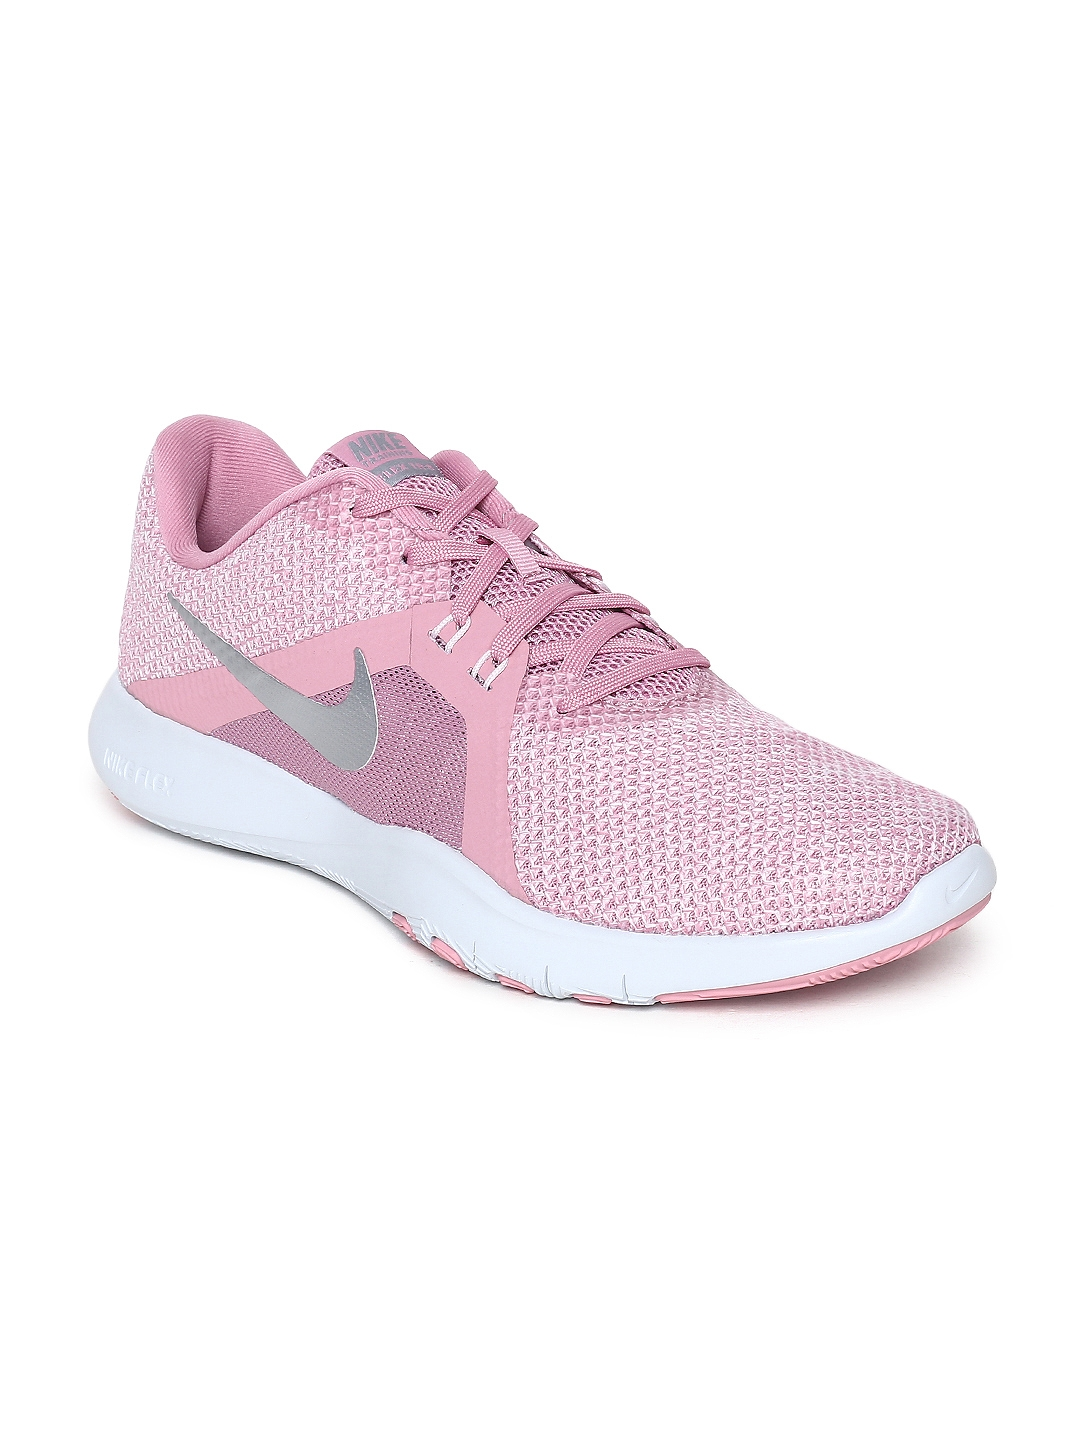 66bc6e88b0698 Buy Nike Women Pink NIKE FLEX TRAINER 8 Training Shoes - Sports ...